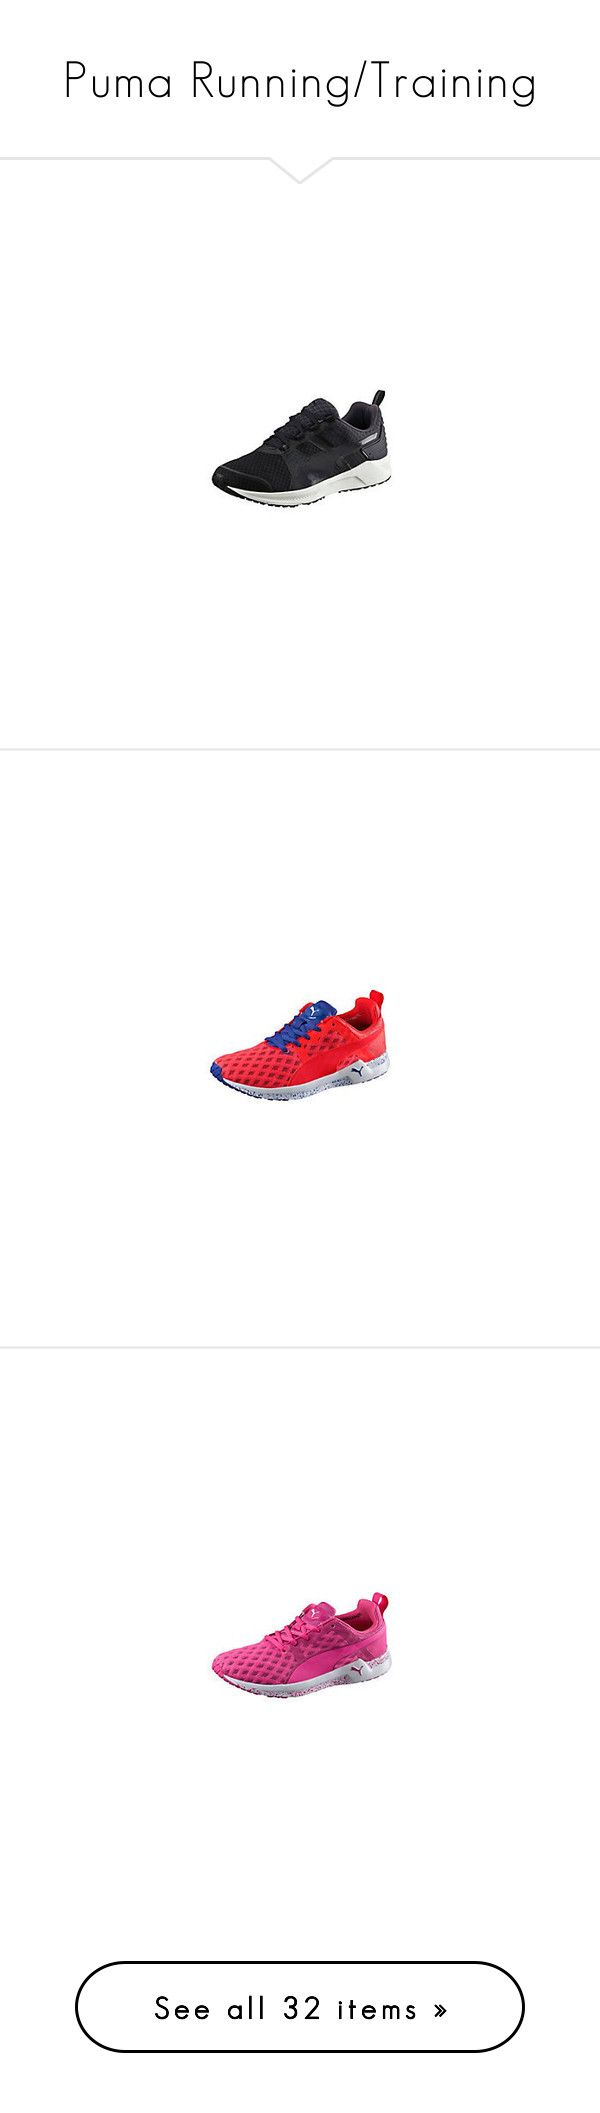 """Puma Running/Training"" by tynabrookler ❤ liked on Polyvore featuring shoes, athletic shoes, puma shoes, grip shoes, stitch shoes, caged shoes, sport shoes and sneakers"